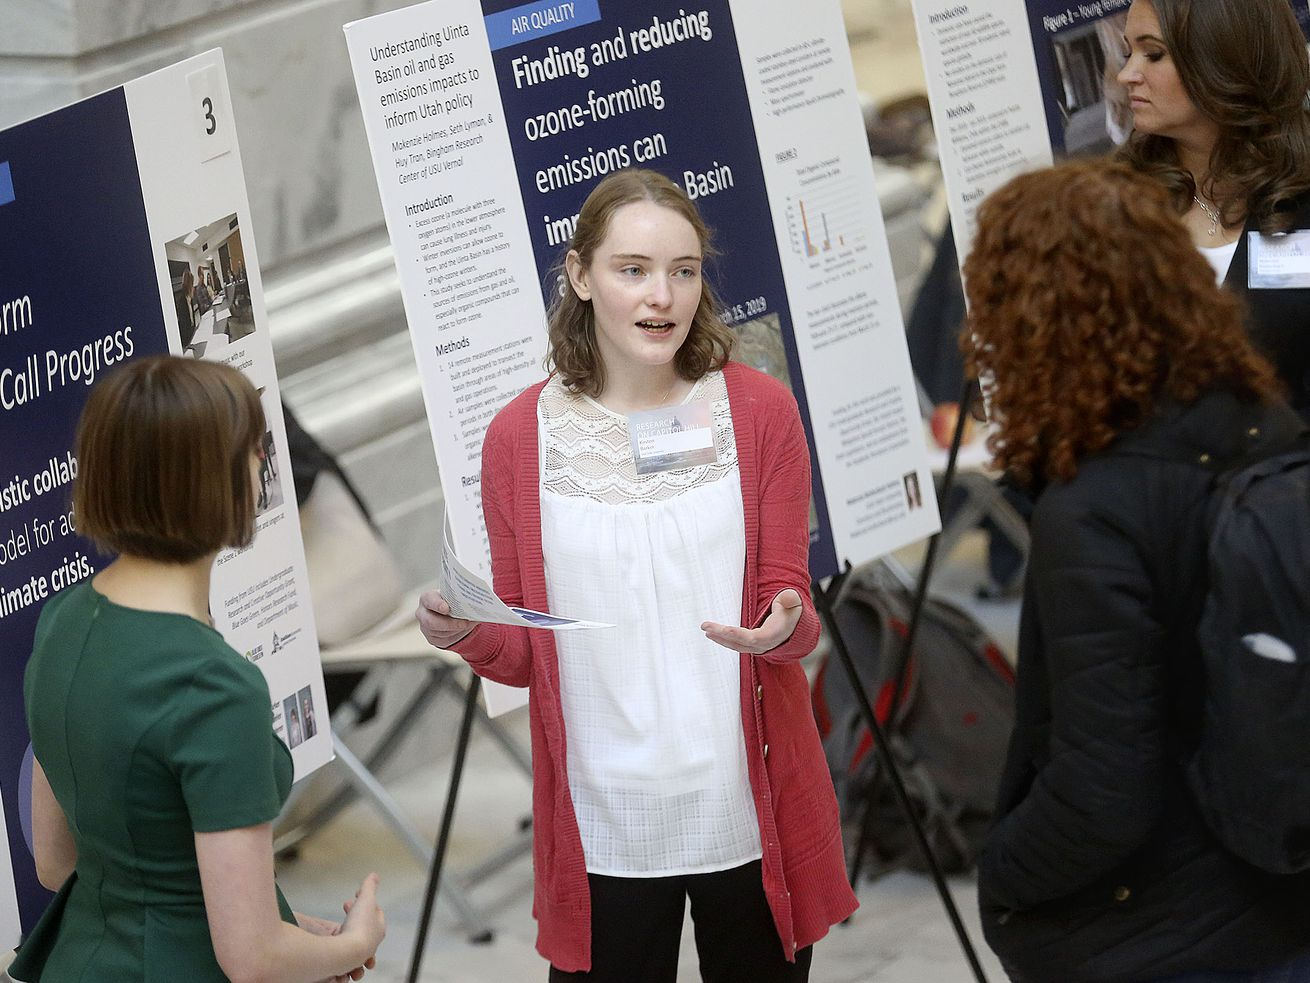 Undergraduates present research to lawmakers during annual event at the Capitol